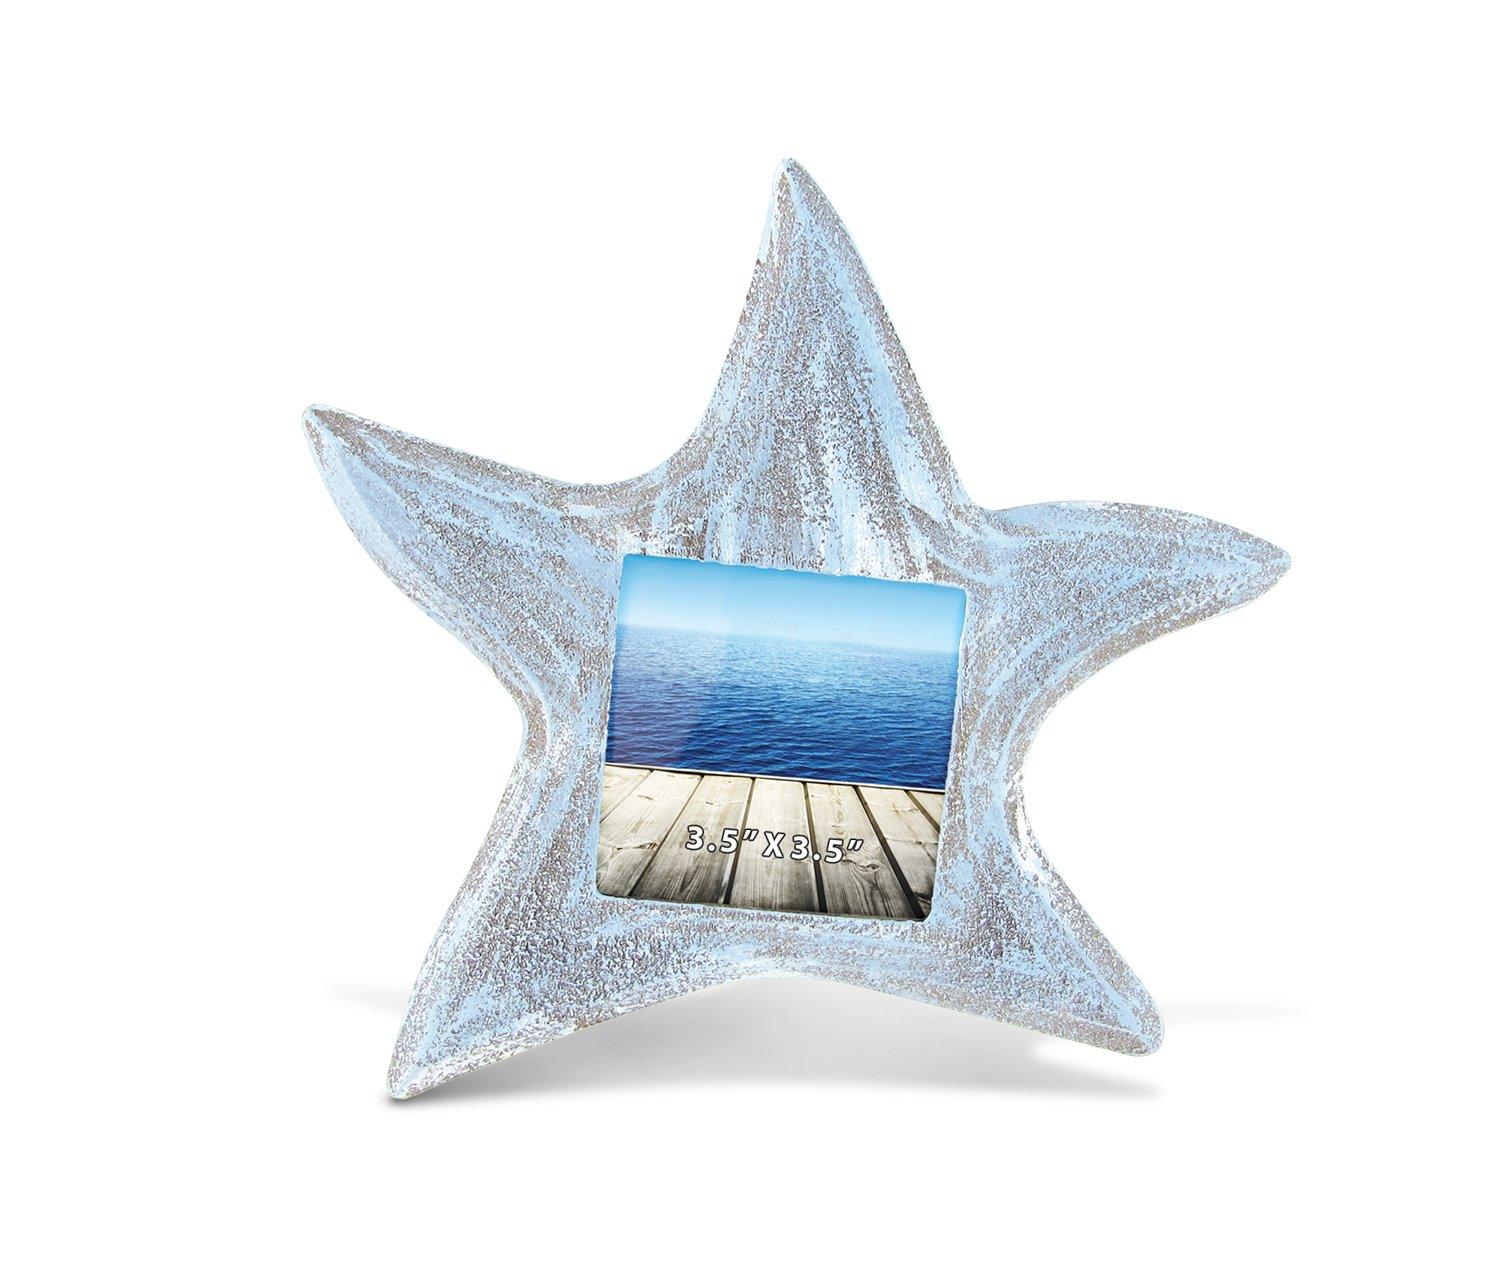 CoTa Global Starfish Inspired Photo Frame Nautical Handcrafted Resin Picture Holder Aquatic Ocean Life Beach Animal Frame Memories Bright & Unique for Marine Themed Rooms 3.5 x 3.5 Inch Home Decor Puzzled Inc.